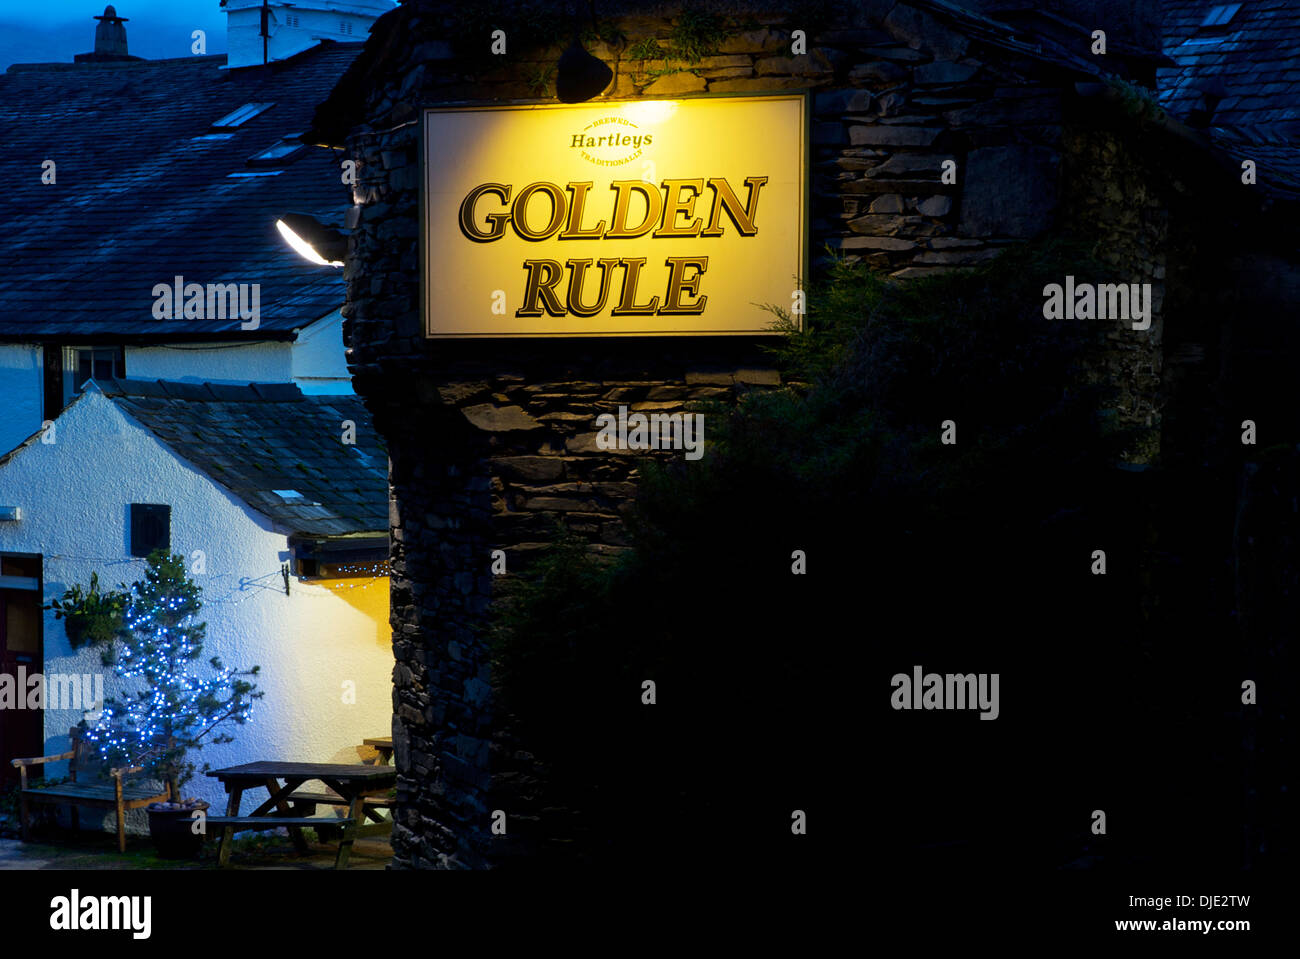 Illuminated sign for pub, the Golden Rule, in Ambleside, Lake District National Park, Cumbria, England UK - Stock Image